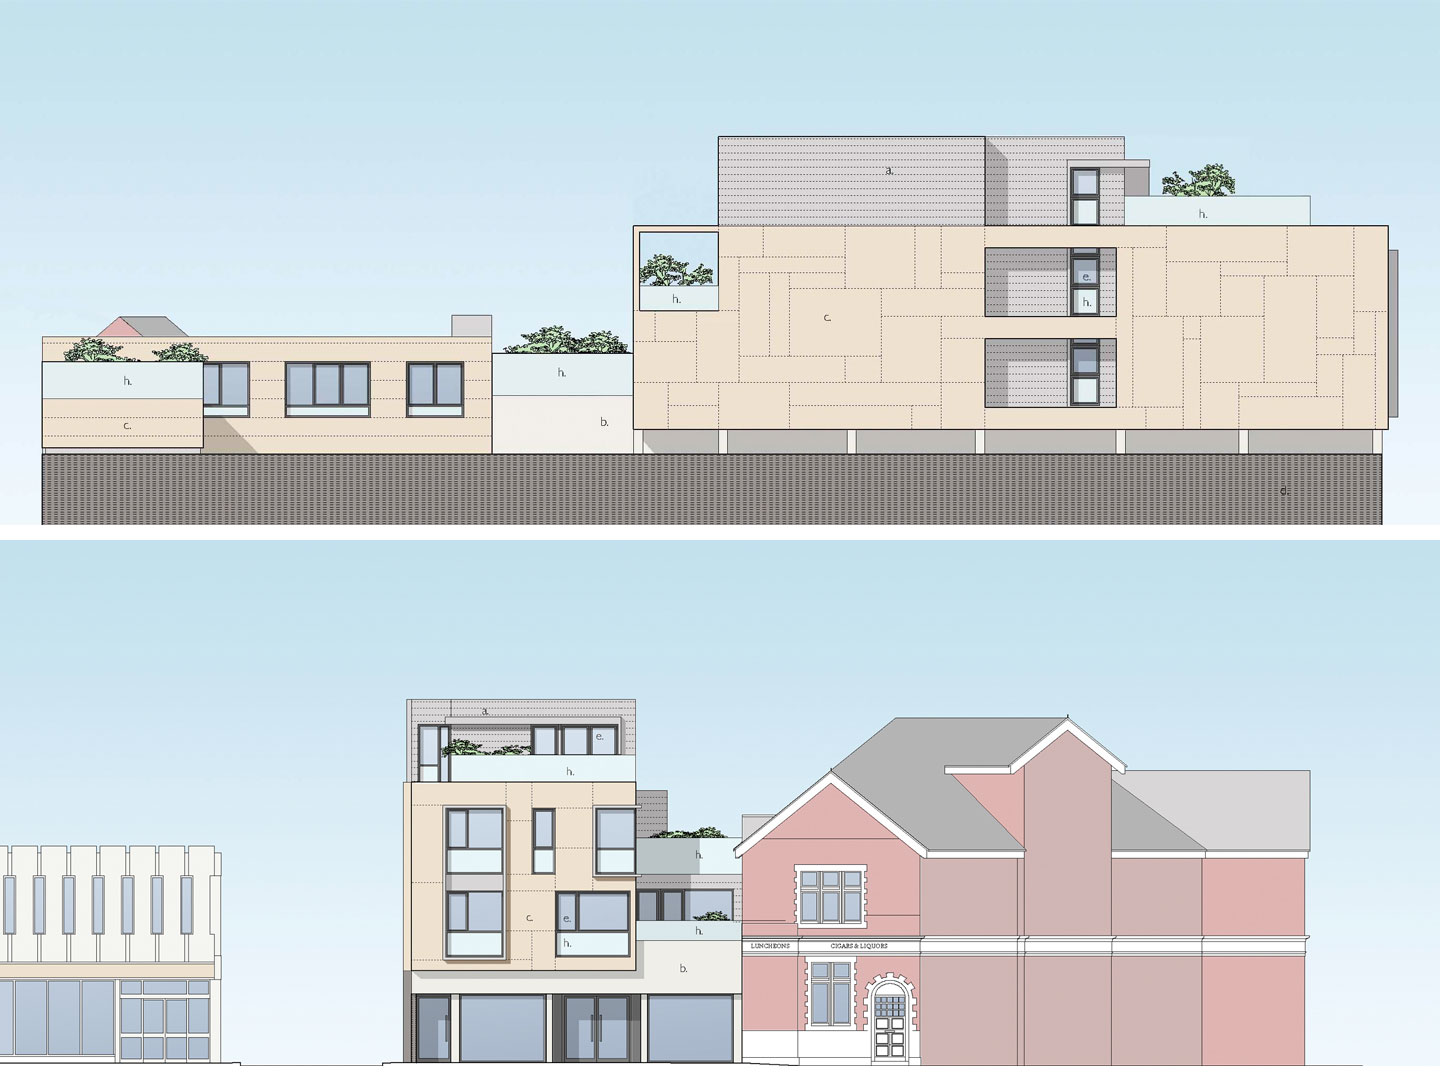 mitcham_road-elevations